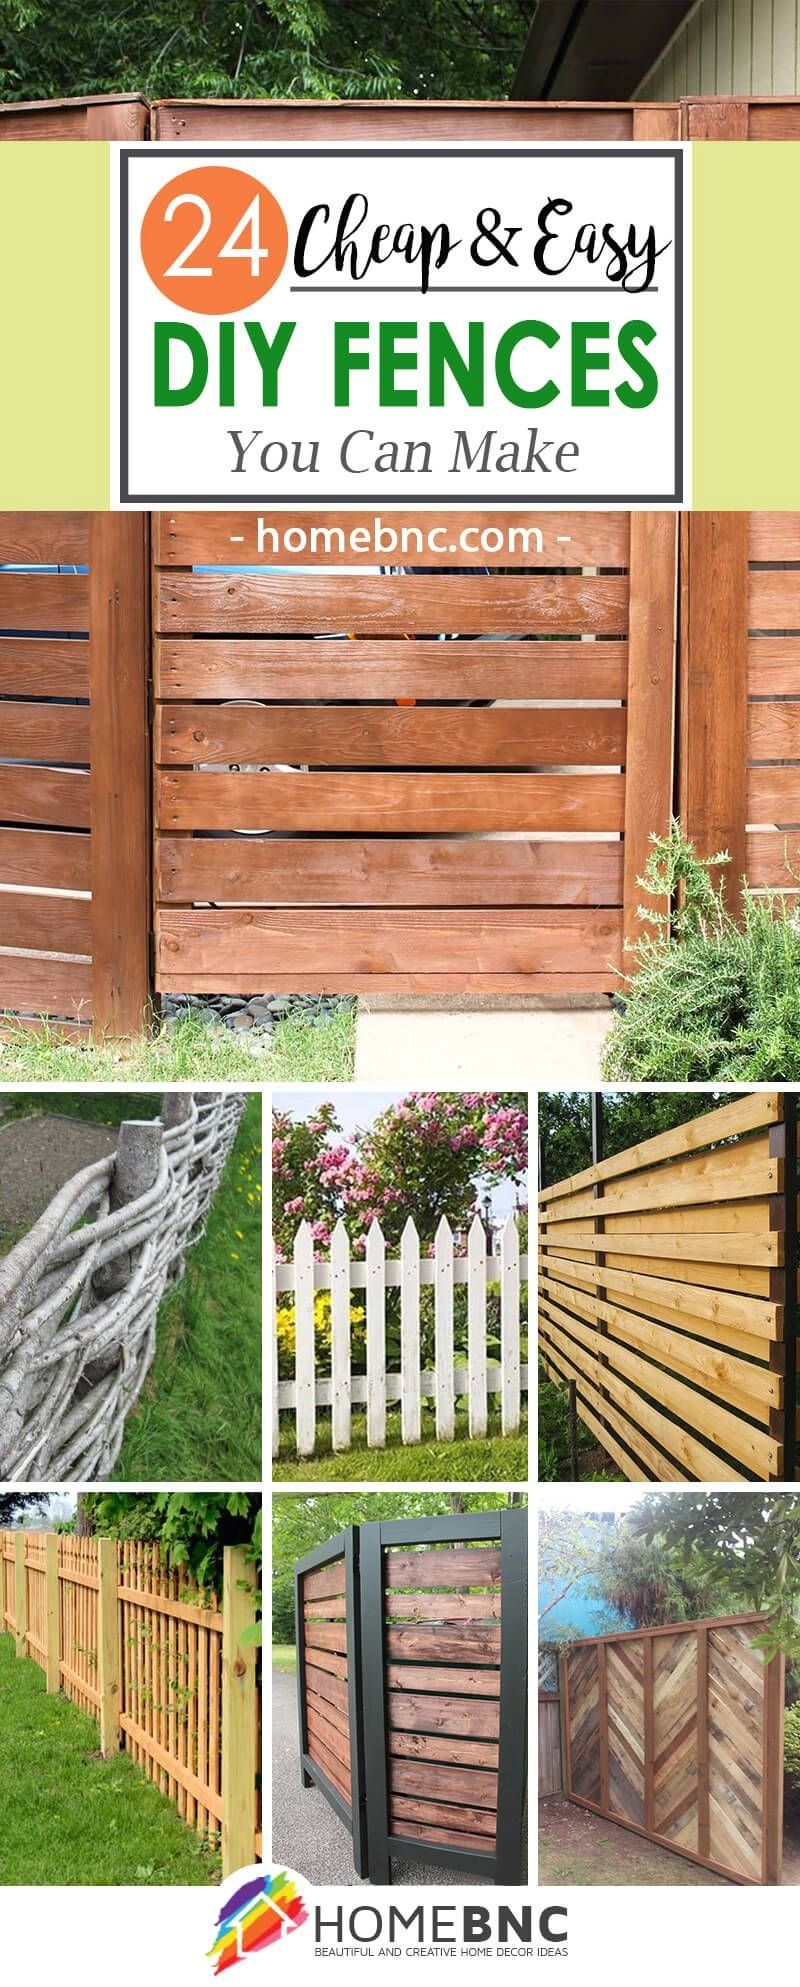 Cheapest Way To Build Fence - Modern Design in 2020 ...